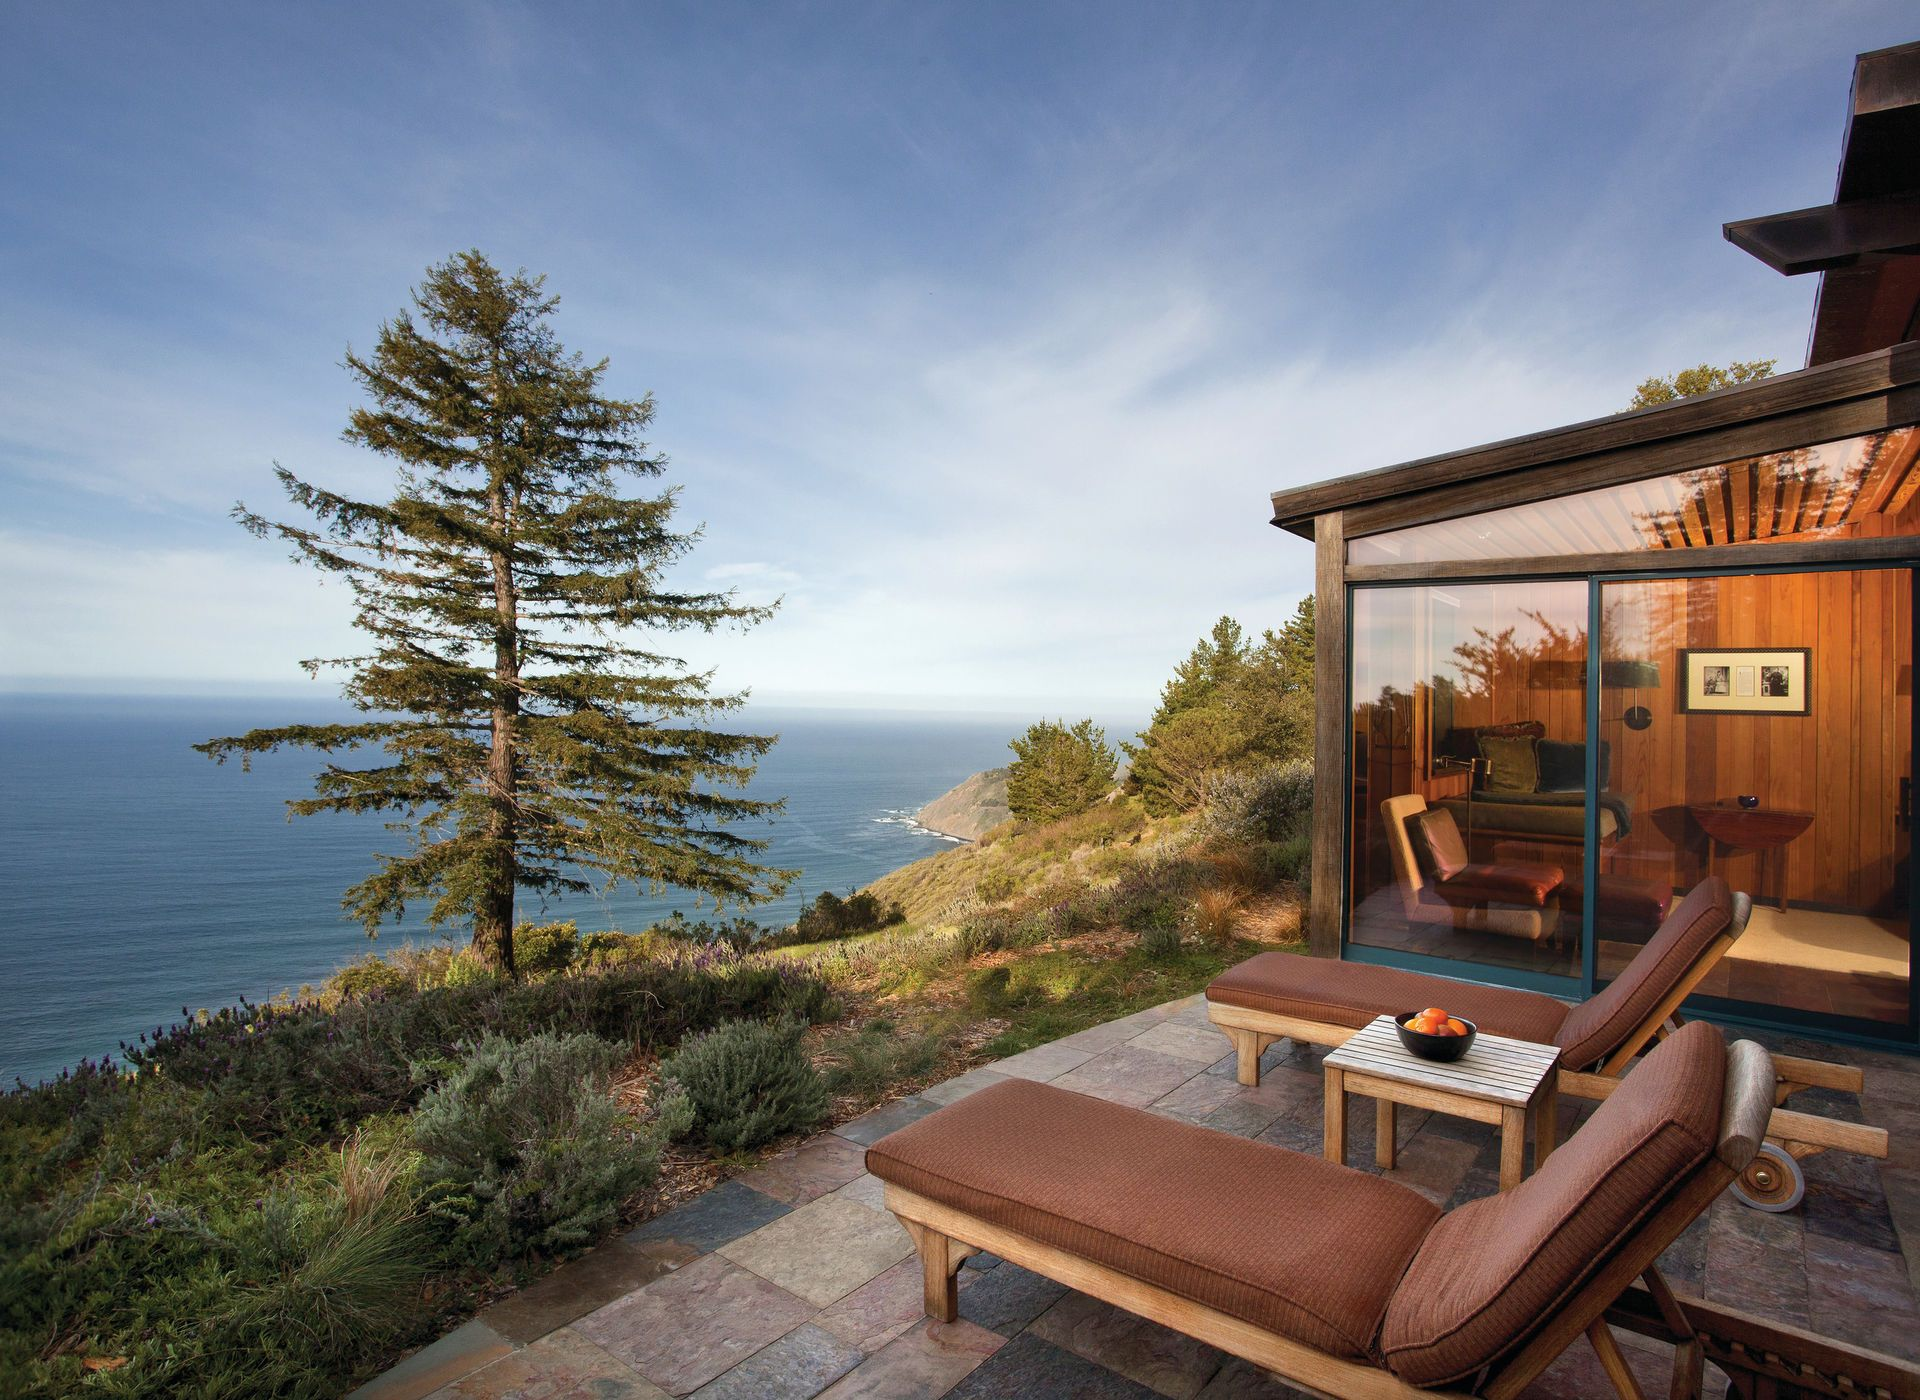 The 10 Most Beautiful Cliffside Hotels In World Sur Californiacentral